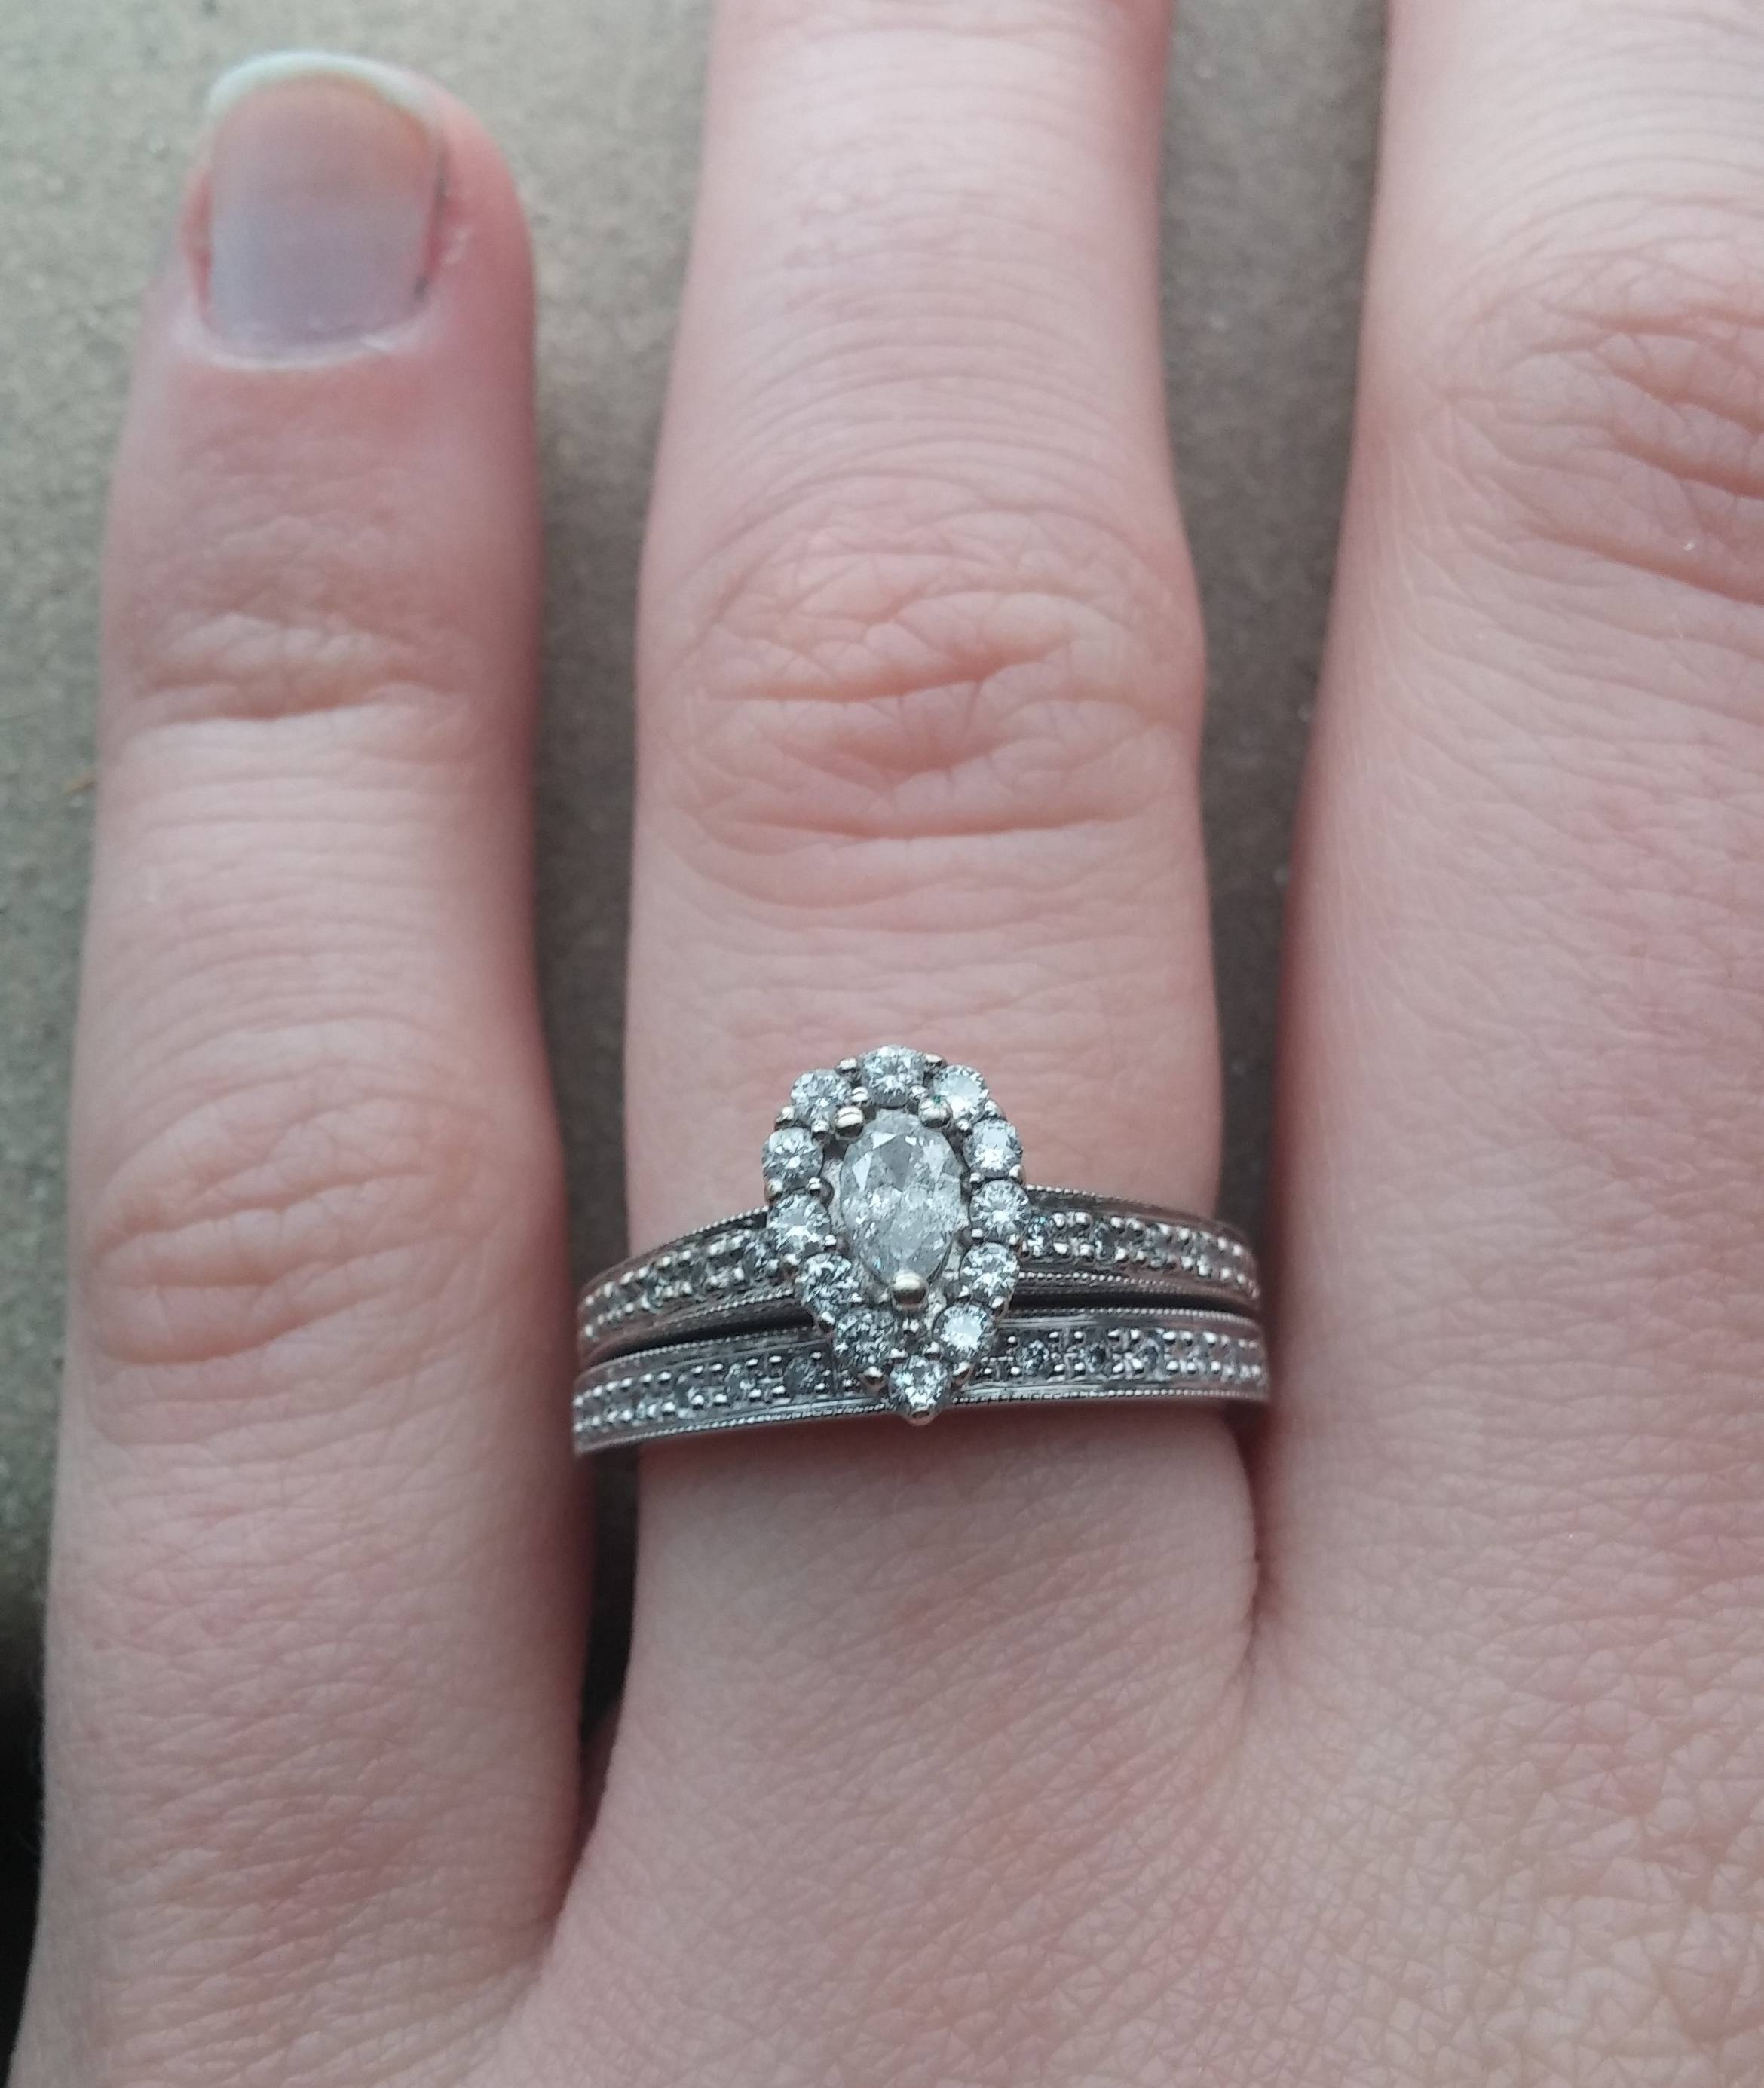 Halo Engagement Ring, Finger Size 6 8, With Petite Center Diamond Regarding Small Size Engagement Rings (View 8 of 15)